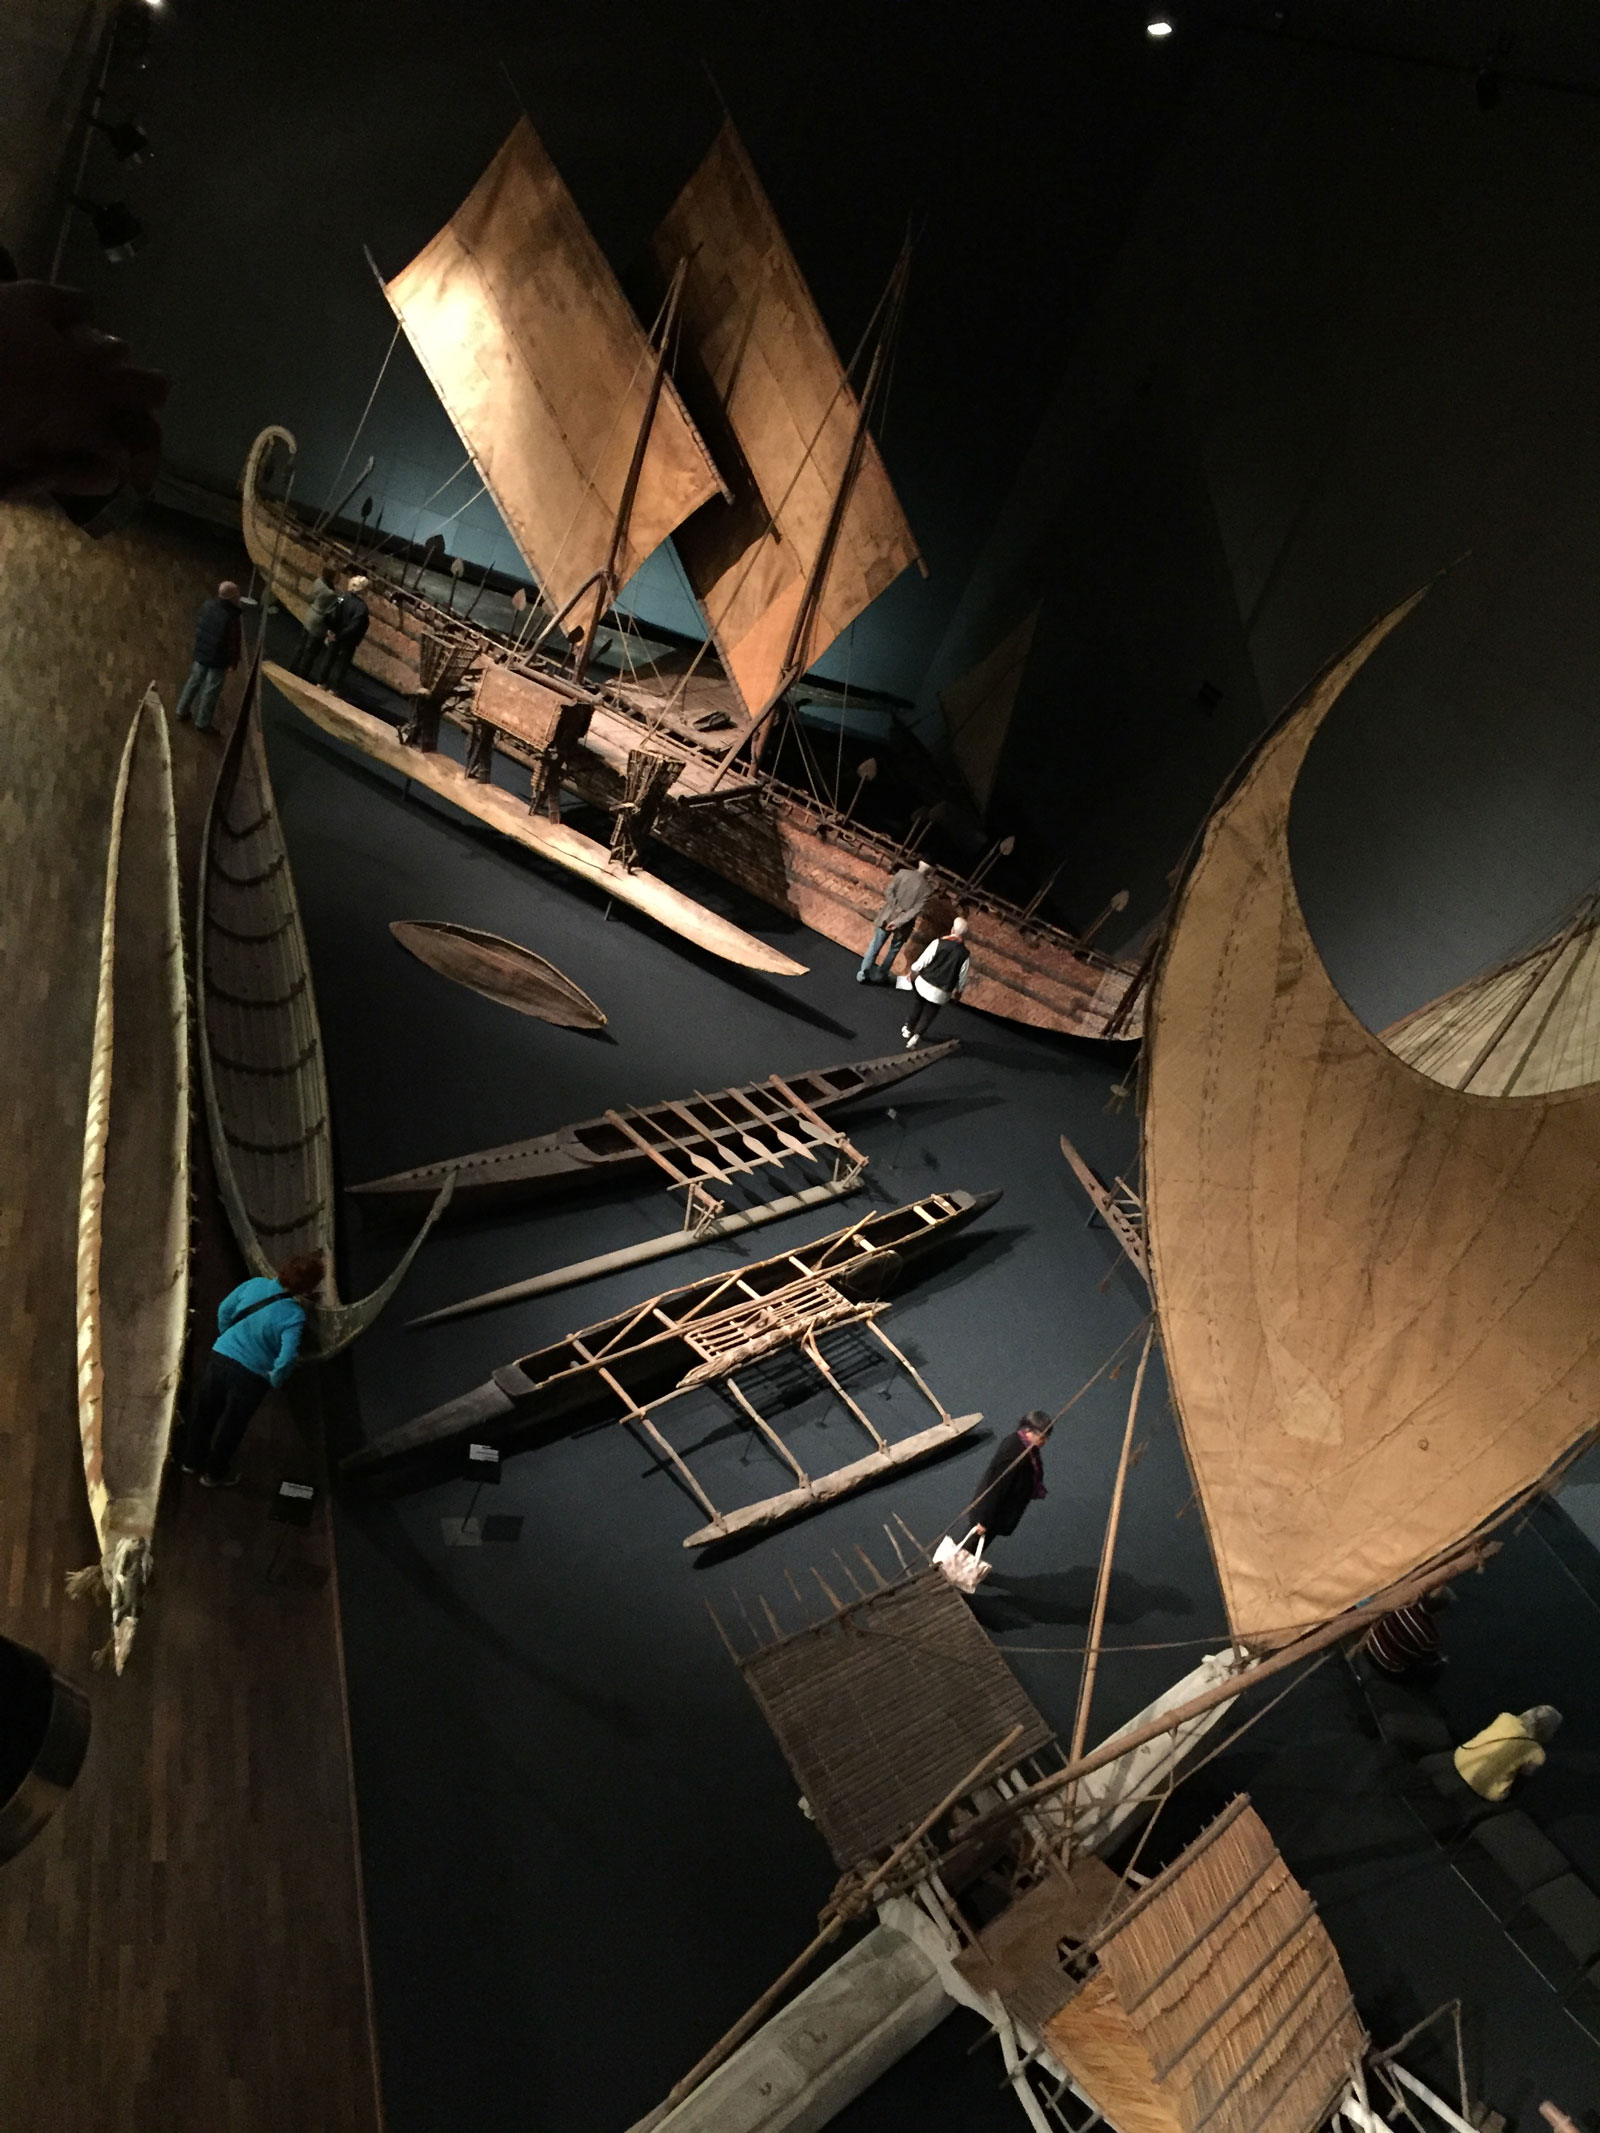 Outriggers at the Dahlem Museum, Berlin, 2016